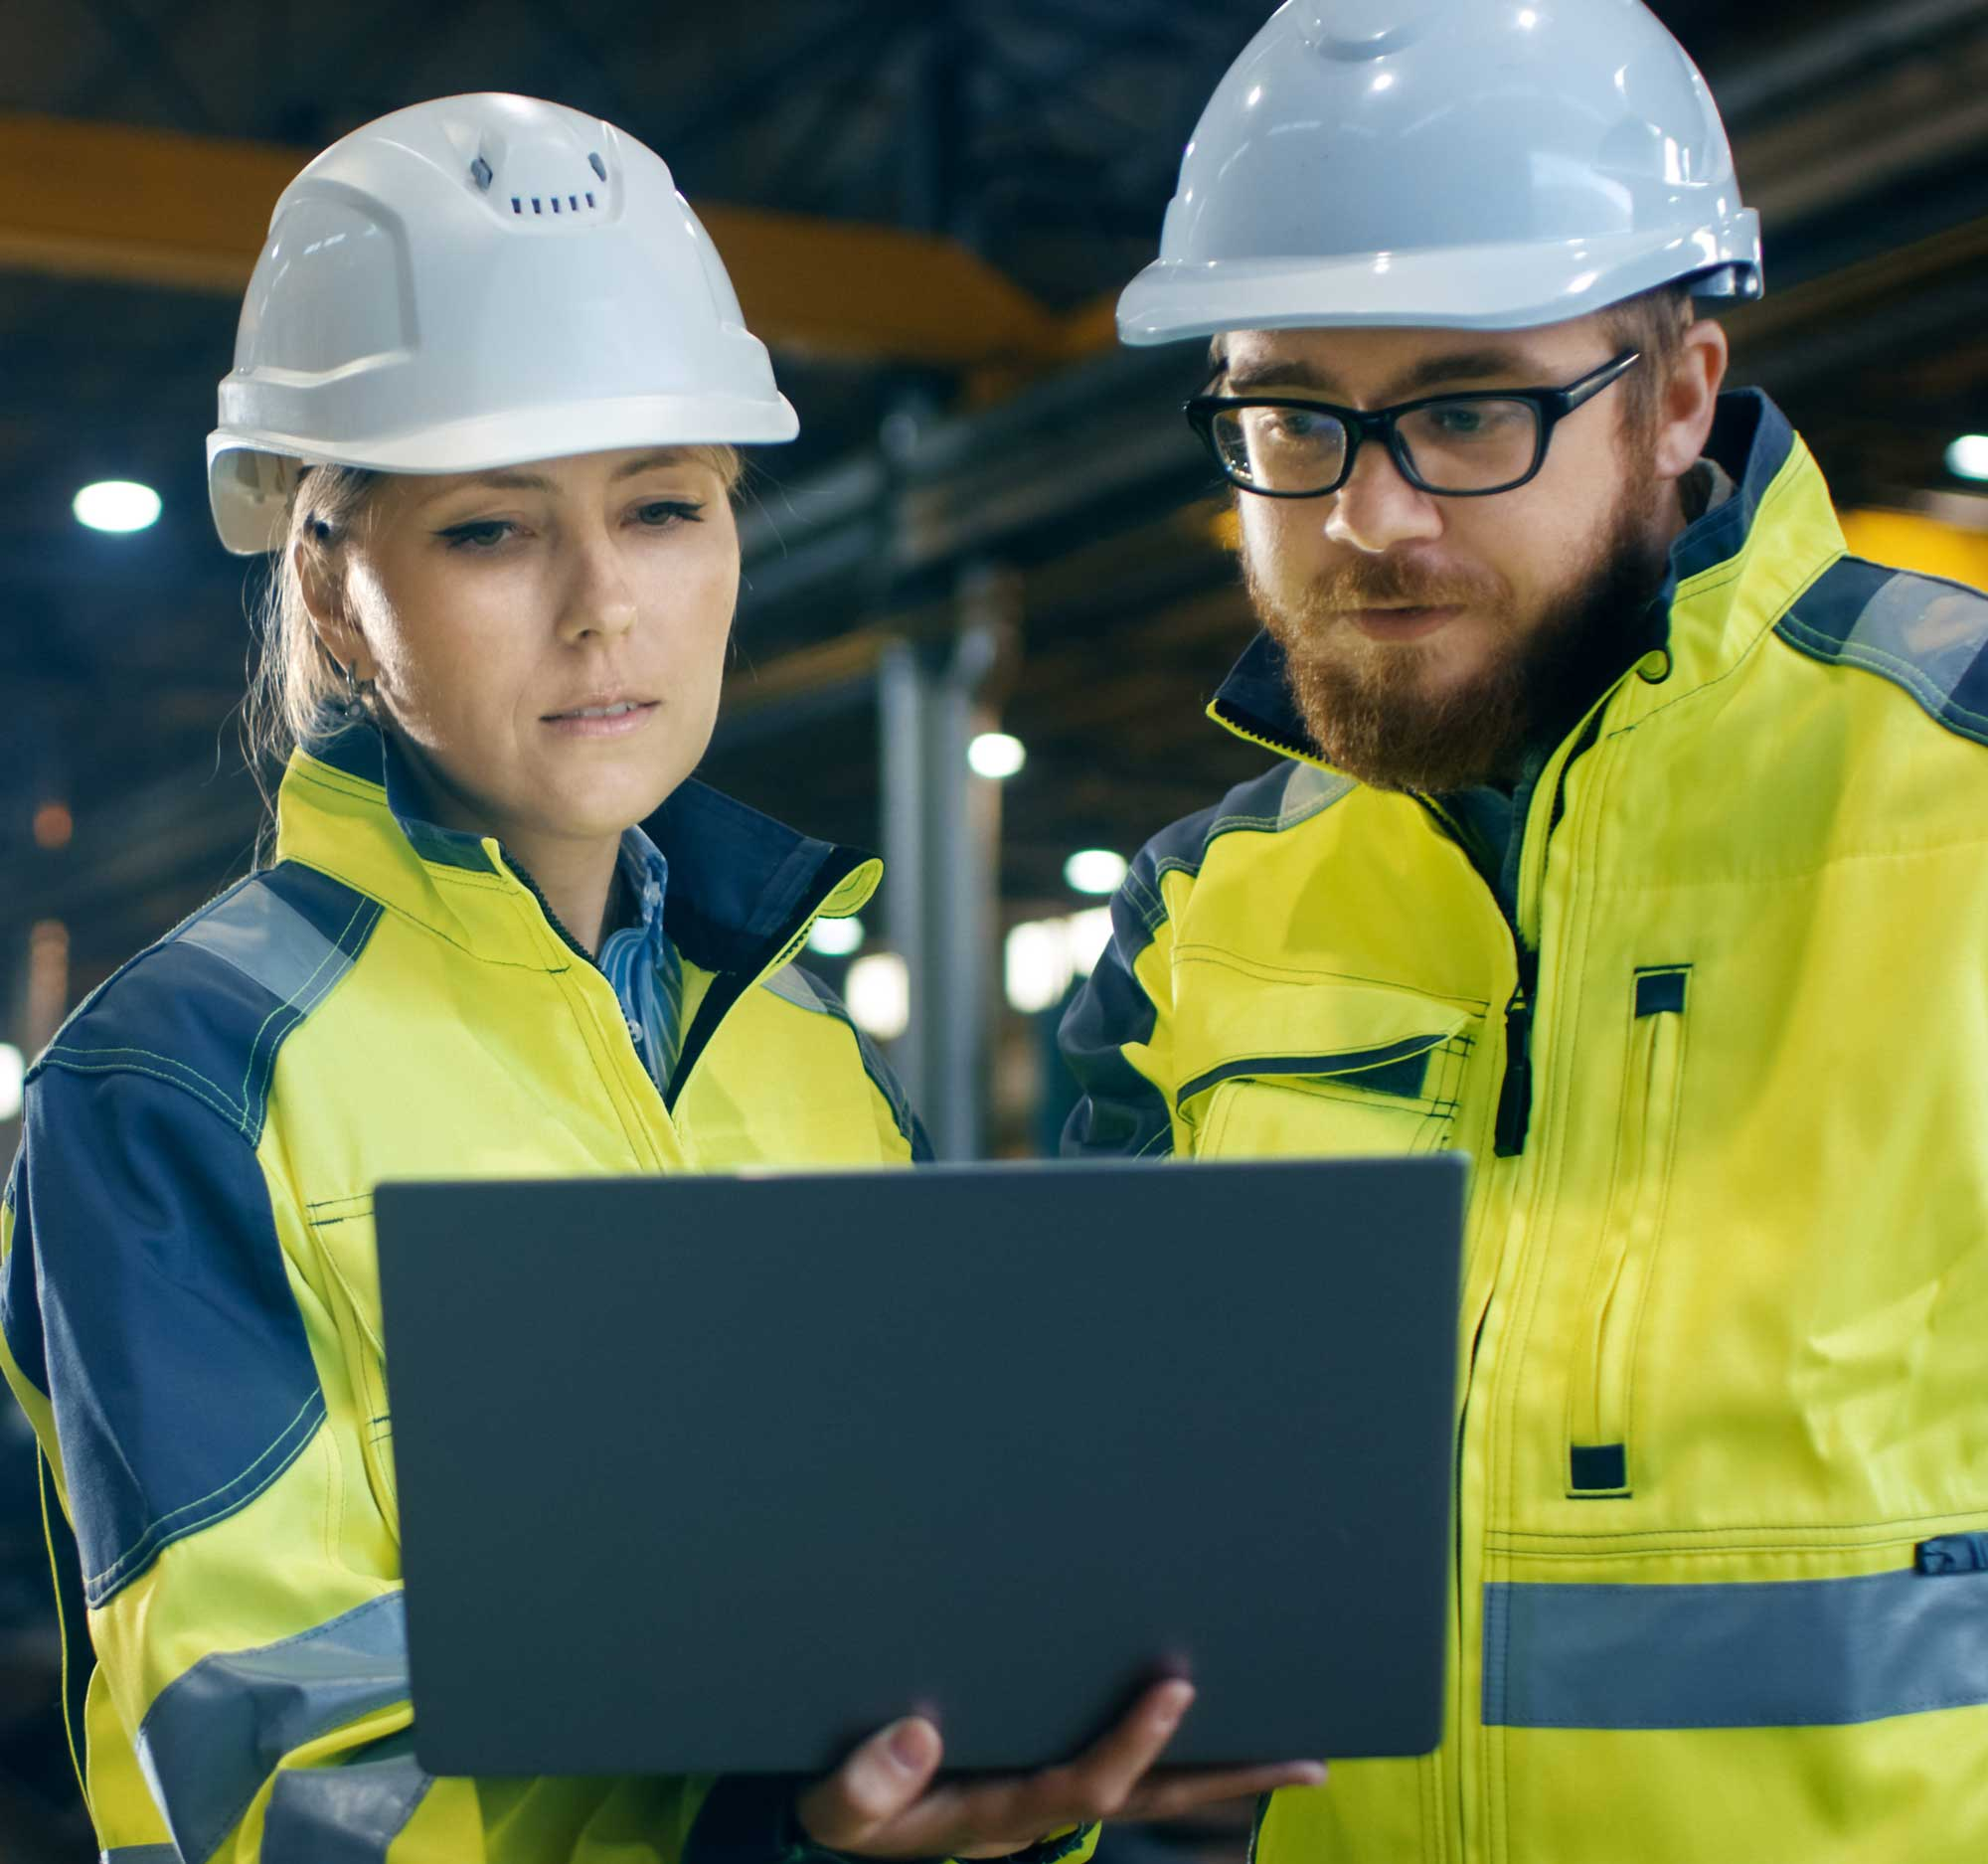 Workplace risk management services